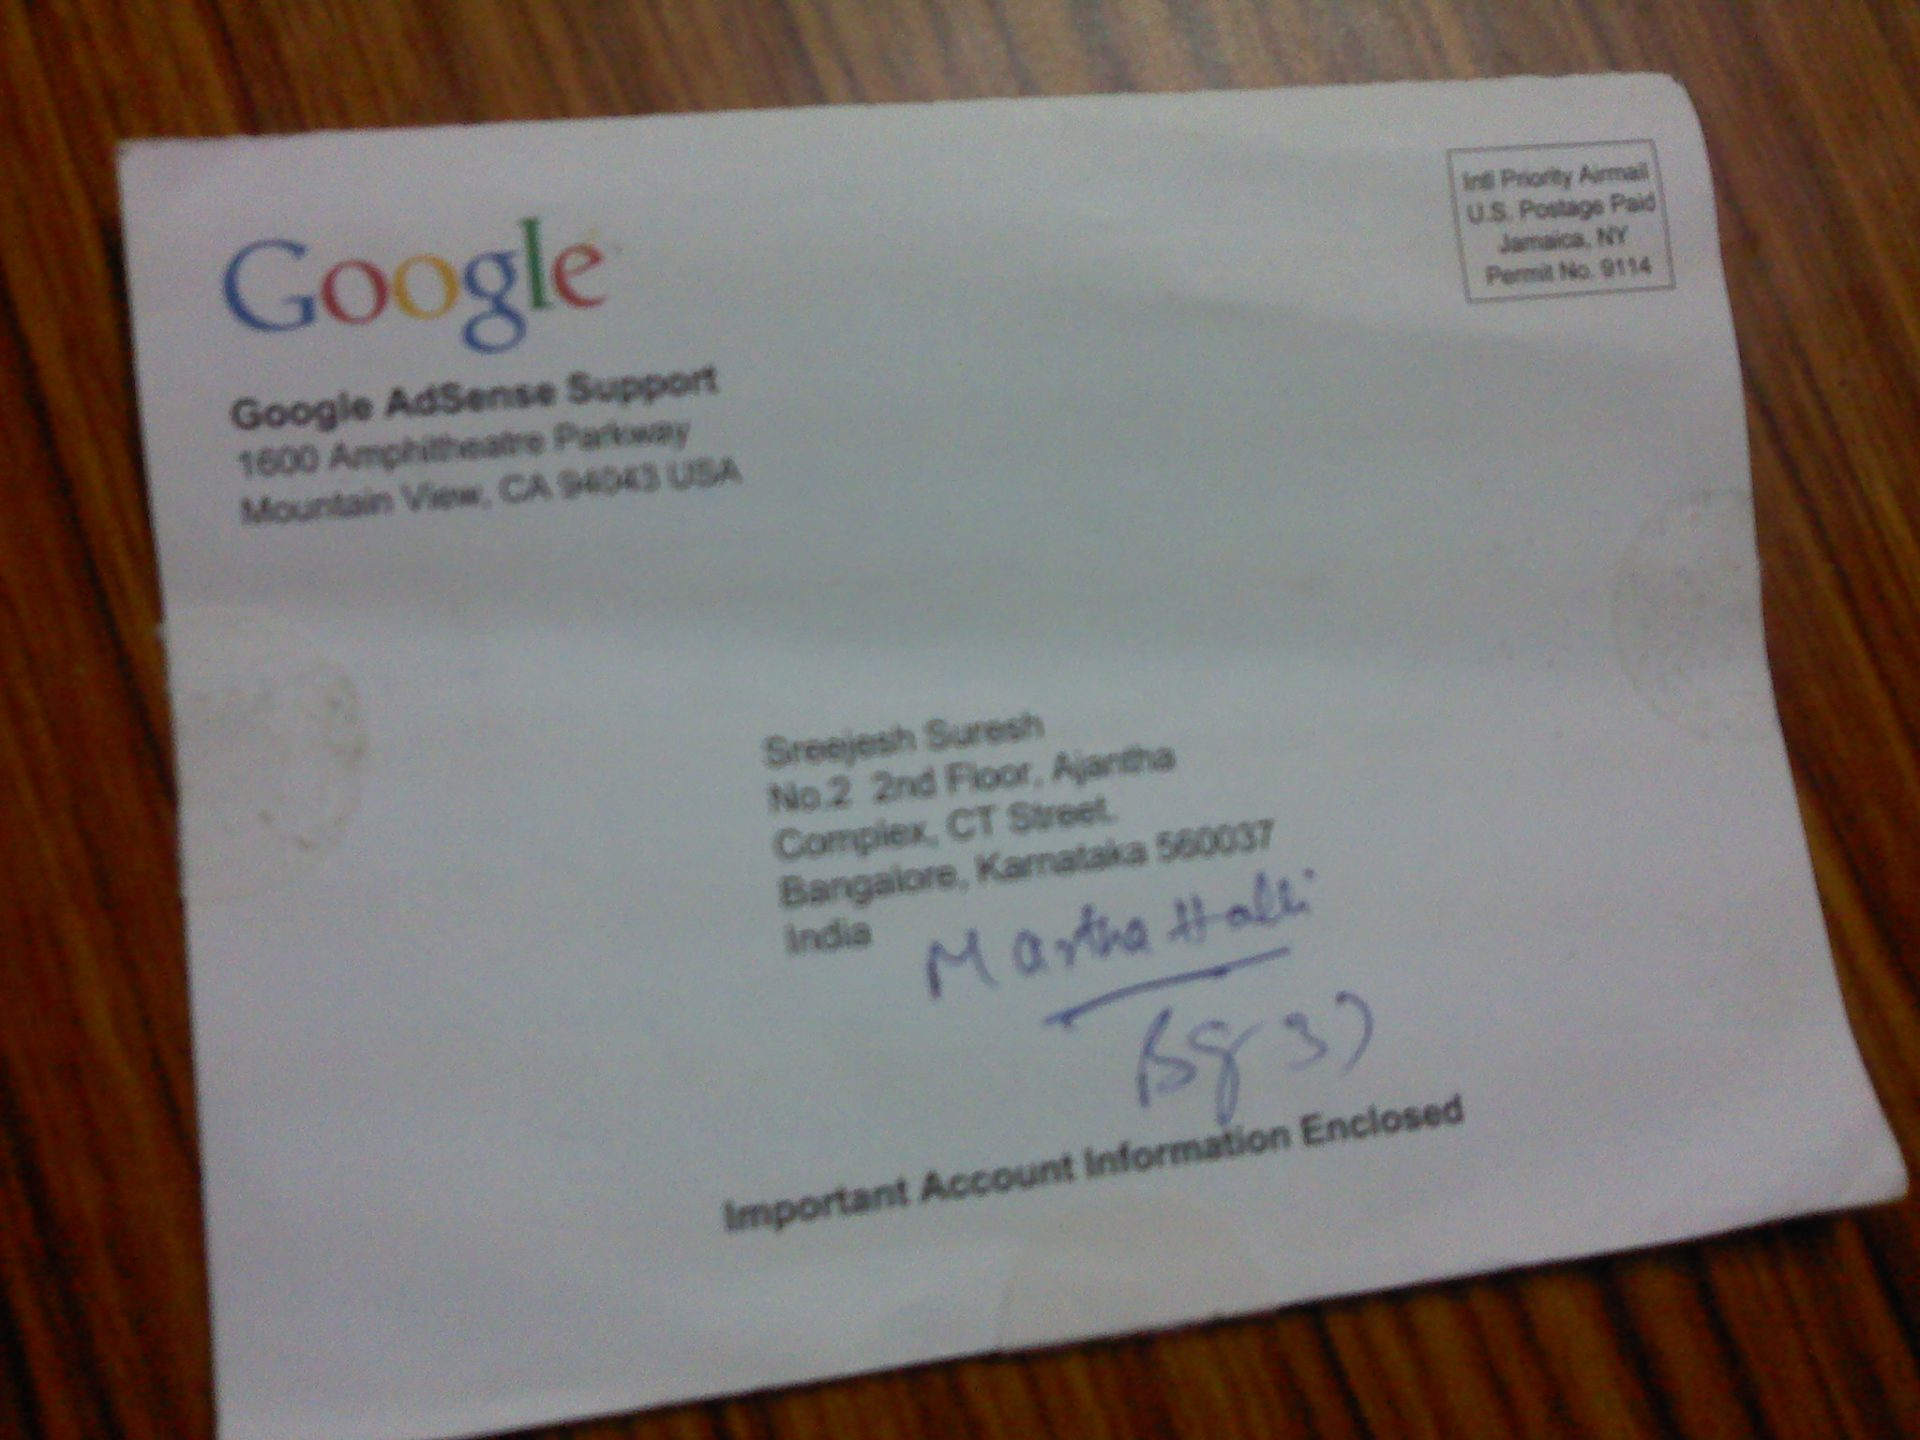 sreejesh adsense verification post mail